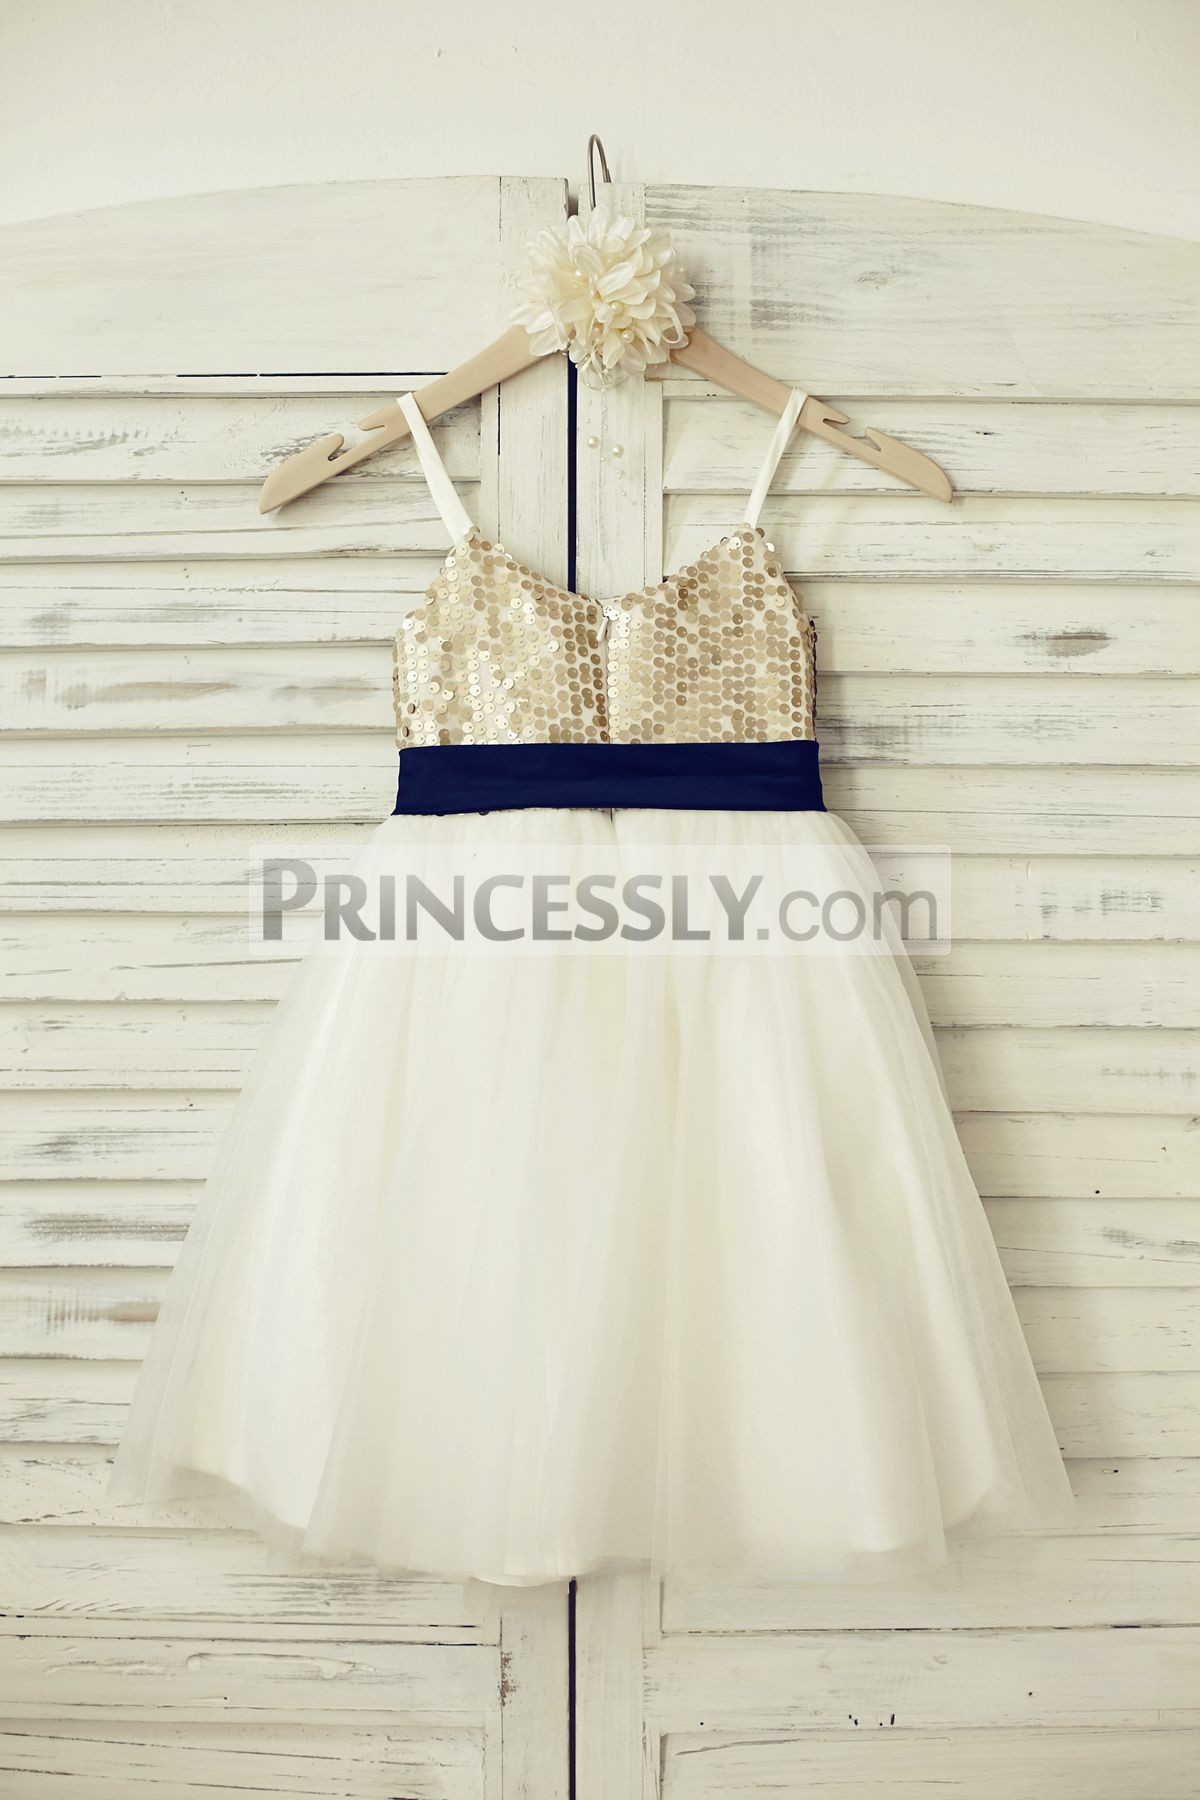 Champagne sequins ivory tulle wedding baby girl dress with navy blue sash